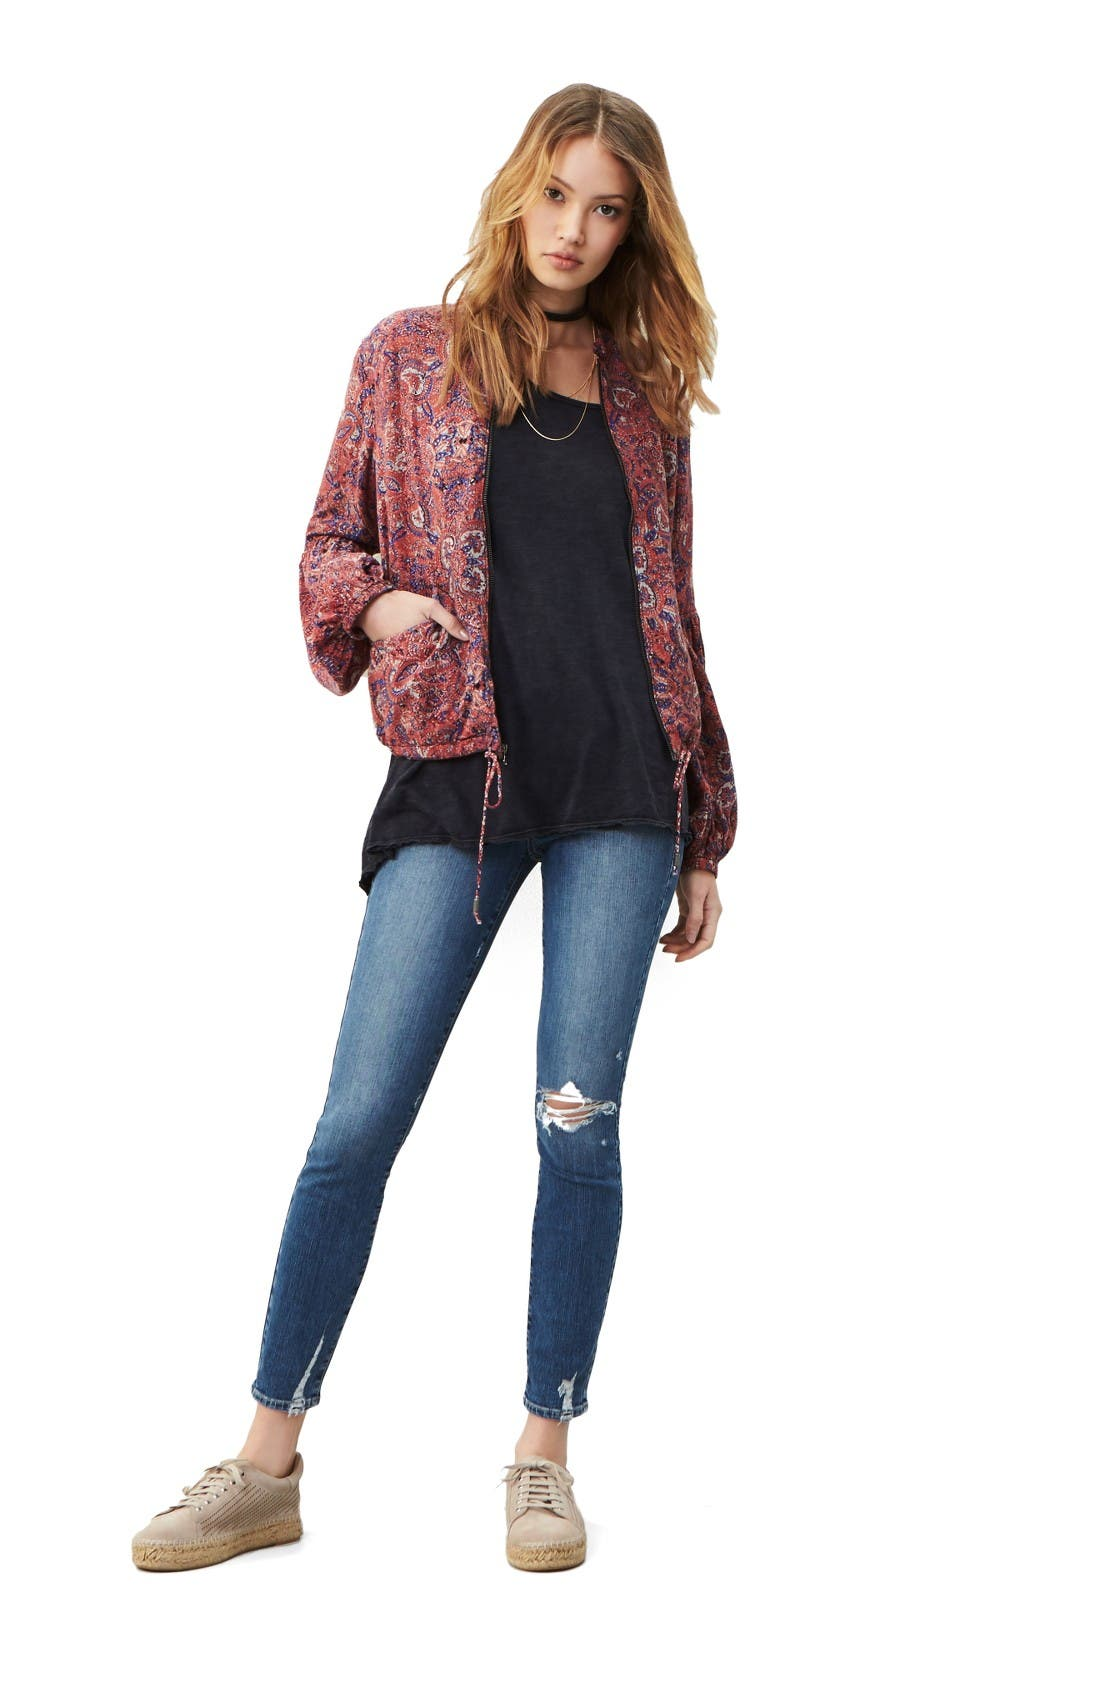 Free People Jacket, Tee & PAIGE Jeans Outfit with Accessories